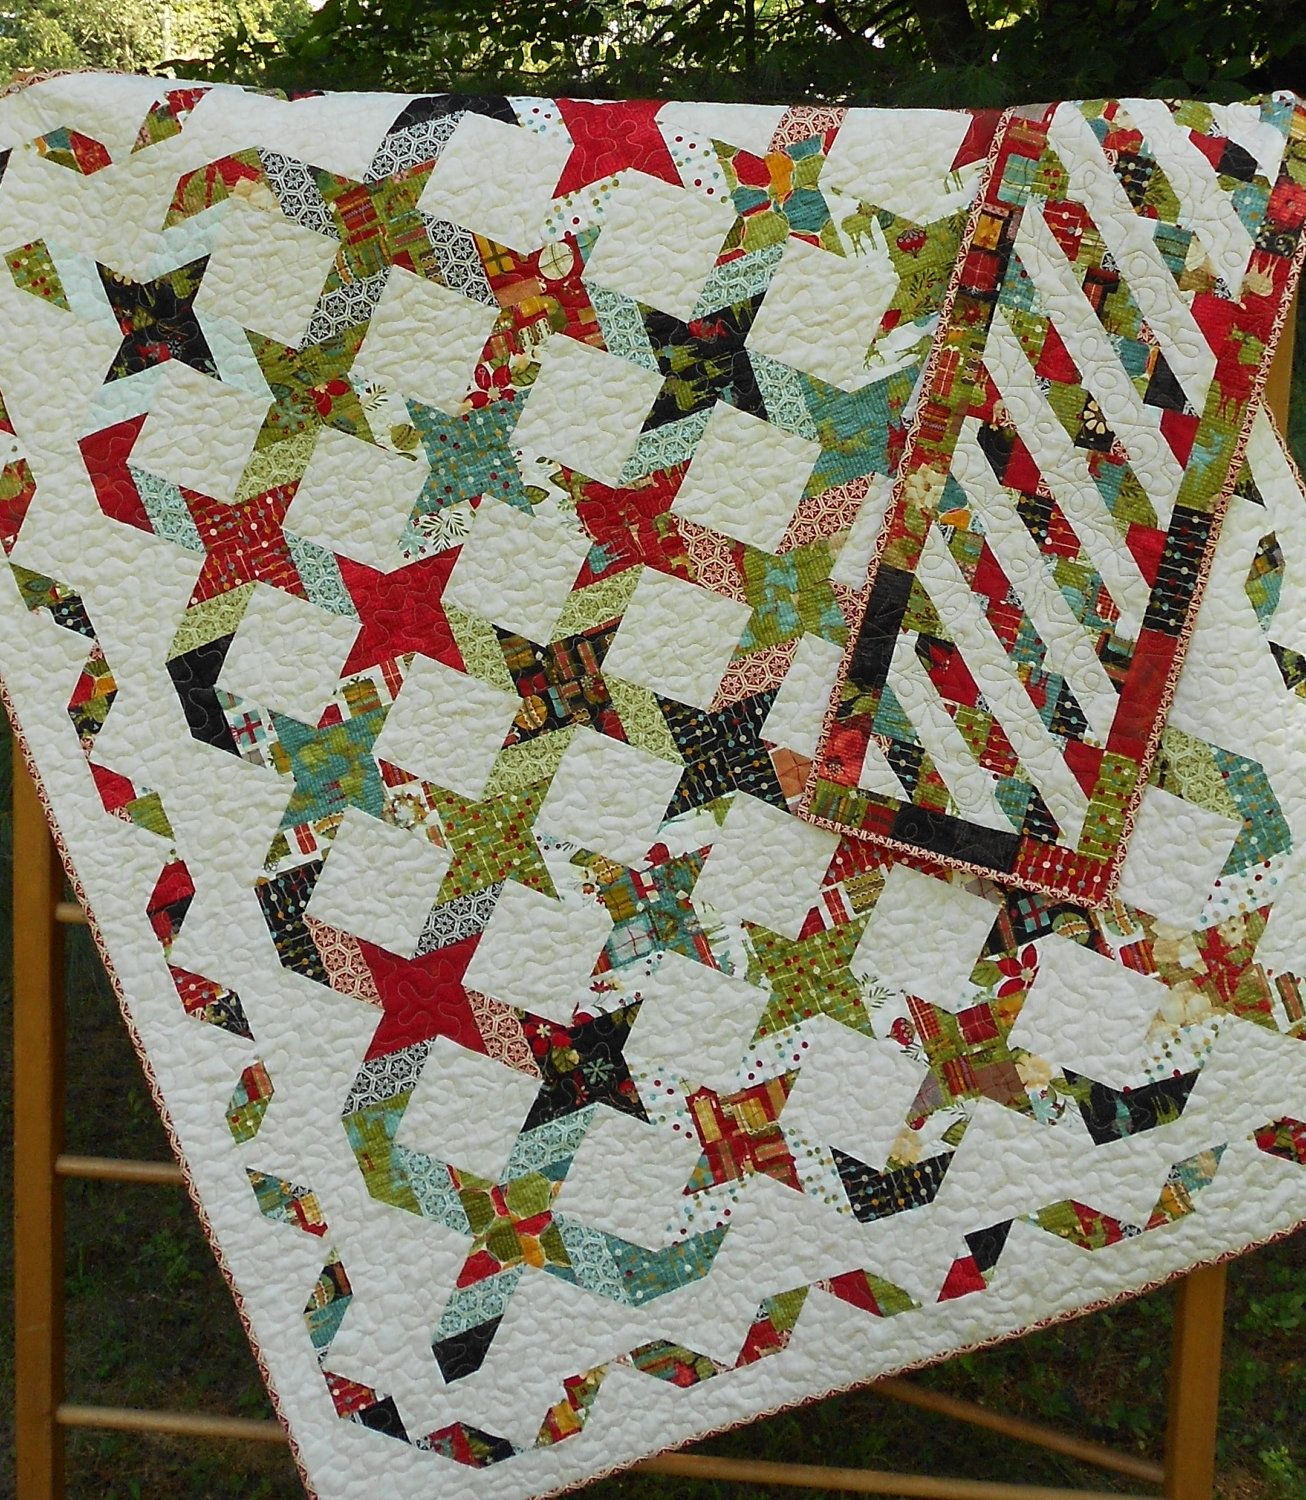 Quilt Patterns - Twisting With The Stars - 4 Quilt Sizes plus ... : jelly roll quilt size - Adamdwight.com